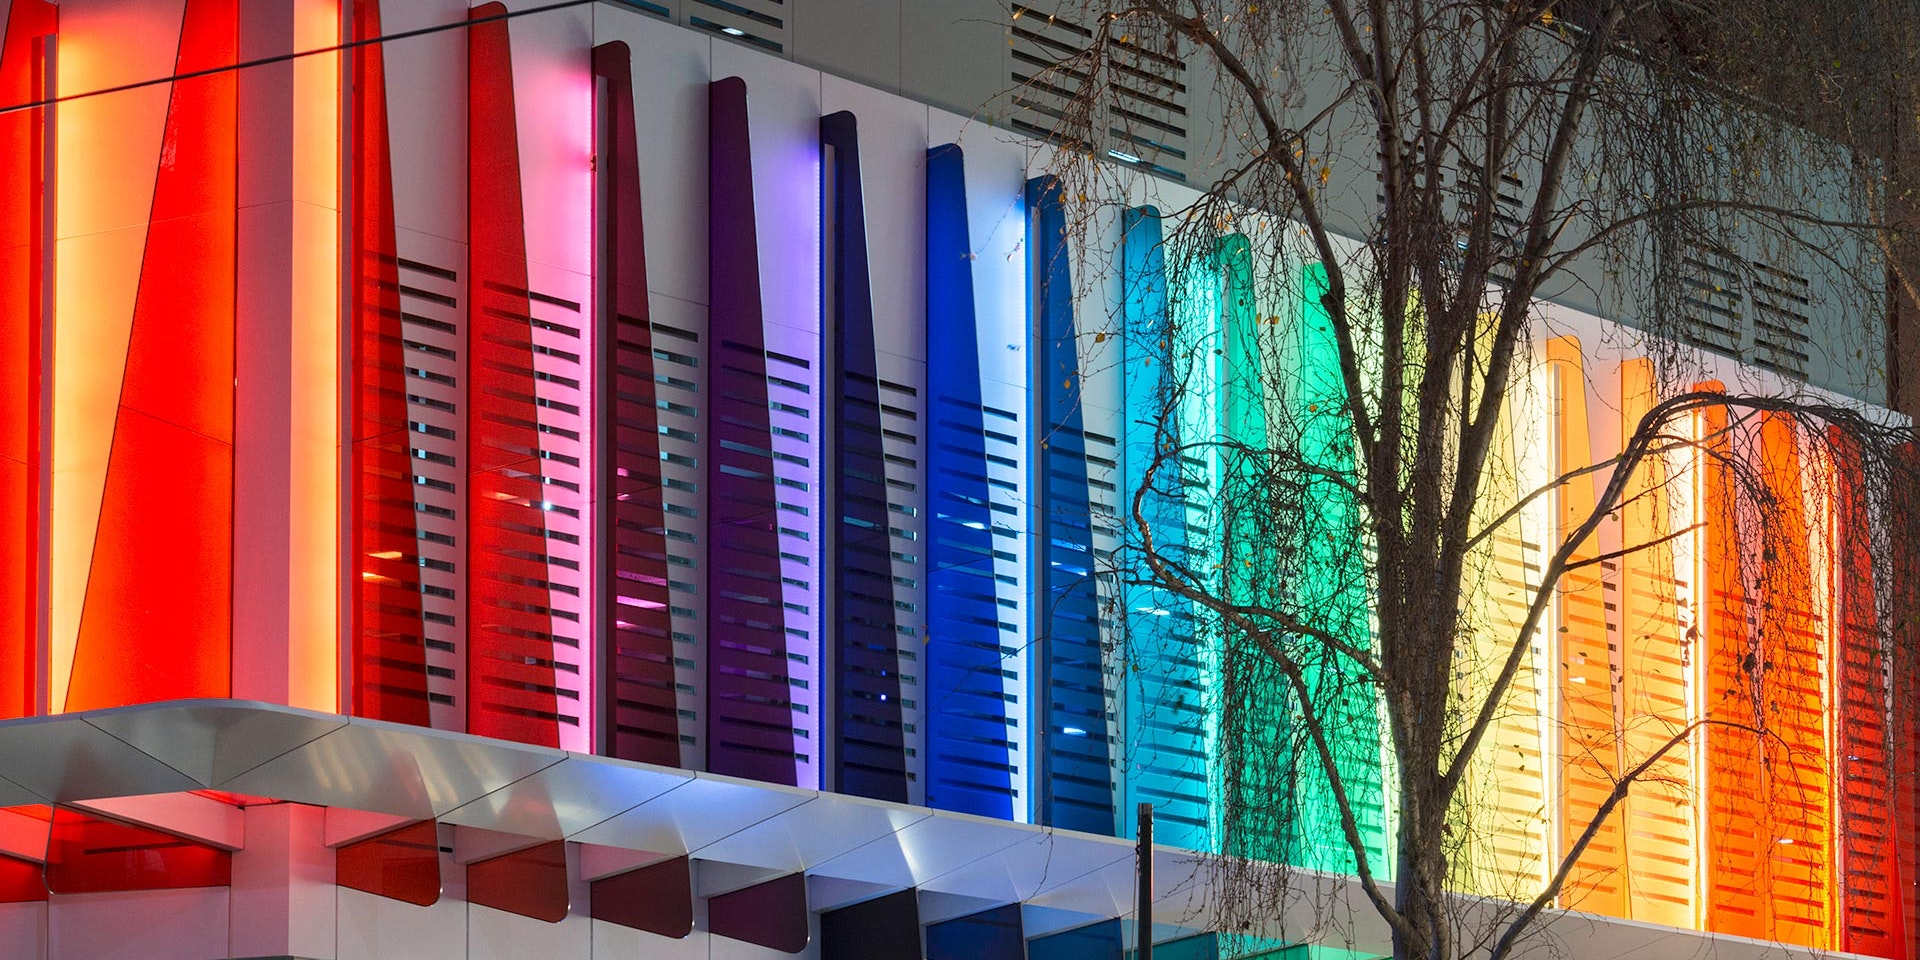 Maxis high-power linear flood light  in application, installed on the Strad Facade in Melbourne CBD. Every second coloured panel is illuminated by a Maxis high-power luminaire.